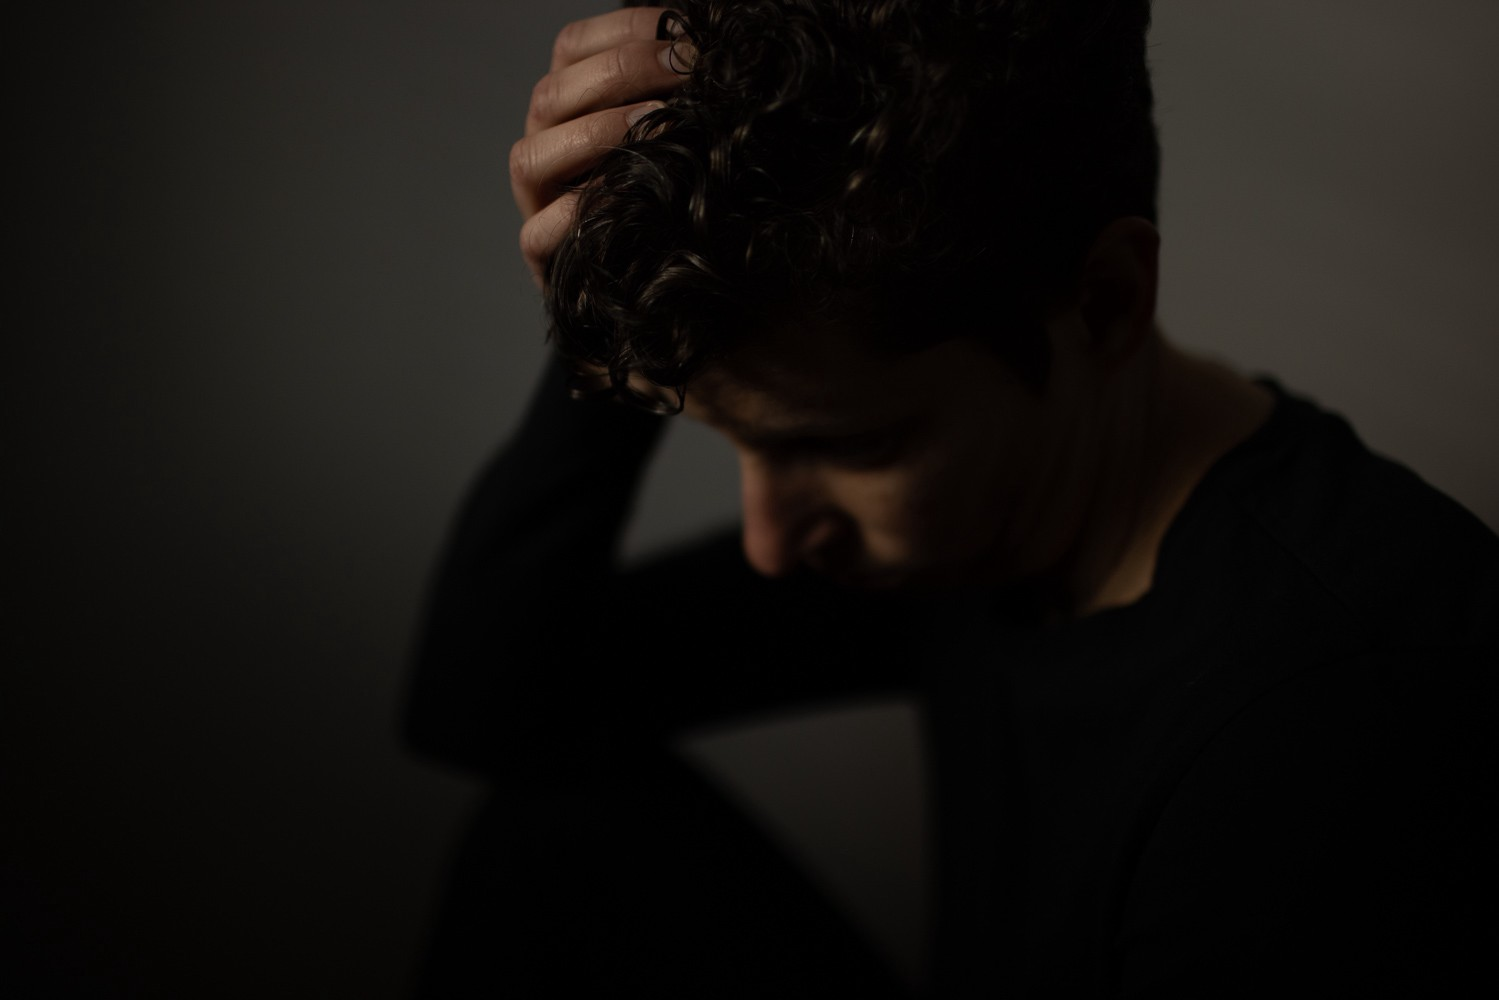 dark moody portrait, face blurred, hand resting on top of head